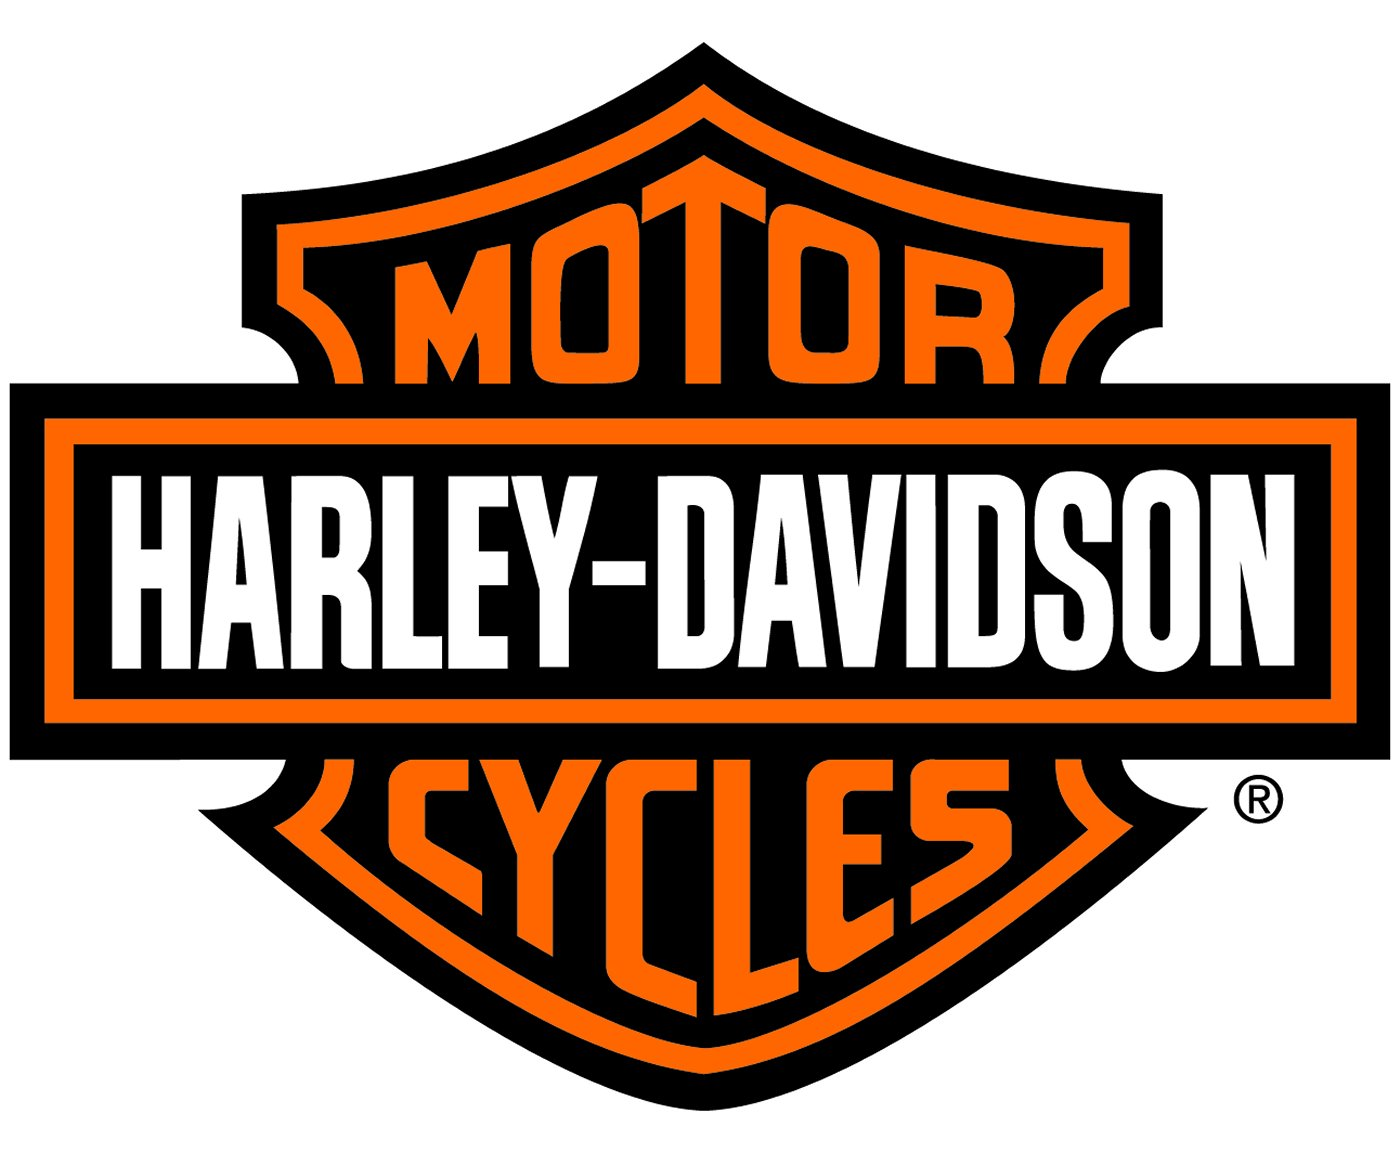 Harley davidson delivers strong growth for fourth quarter and for full